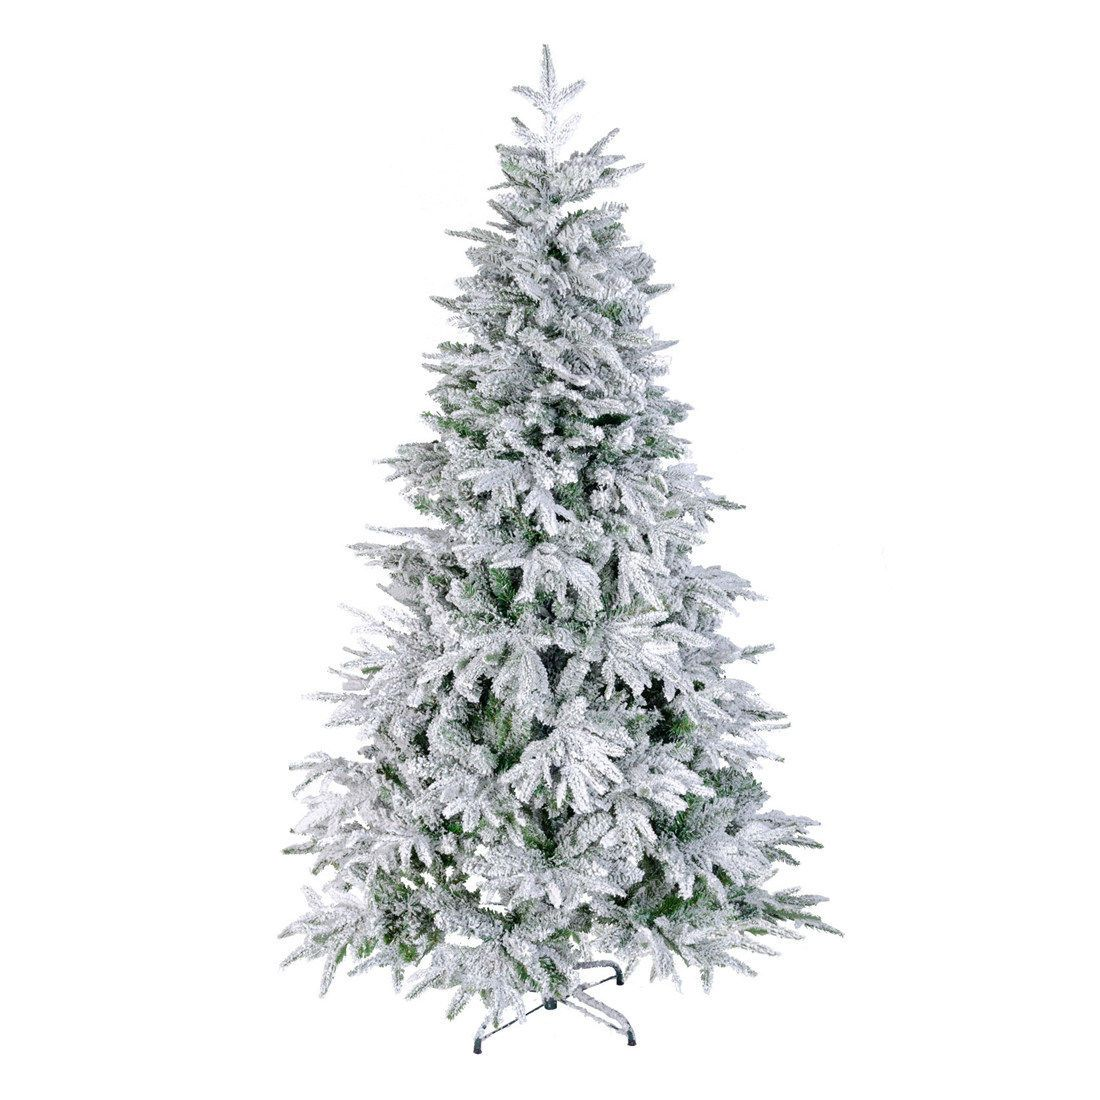 12 Ft Flocked Christmas Tree: 7 Foot FT Artificial Christmas Trees Flocked Snow White